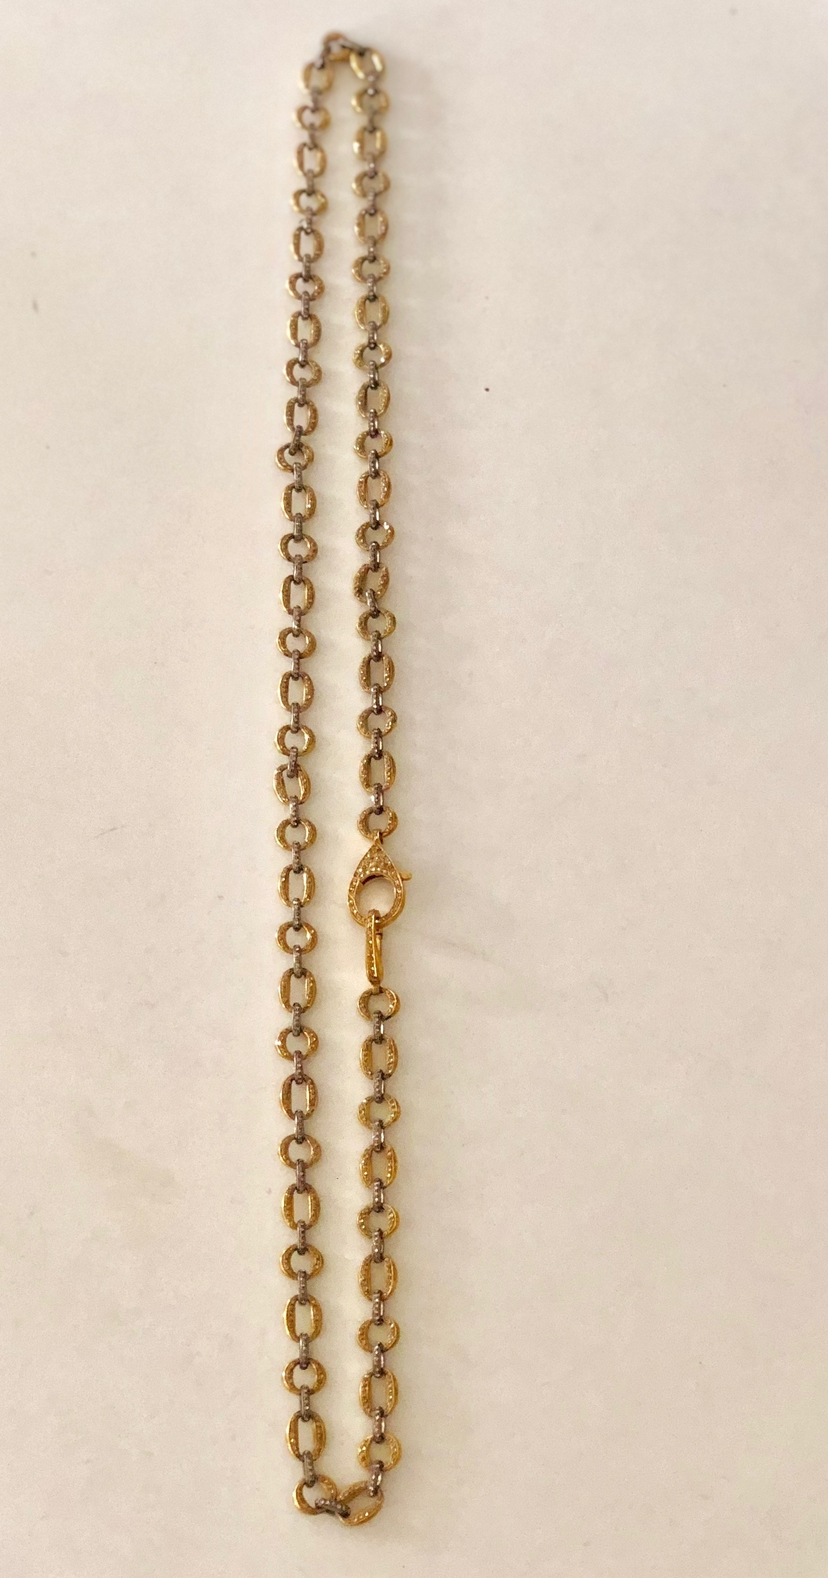 The Woods Fine Jewelry Long Two-Tone Pave Diamond Link Necklace Jewelry